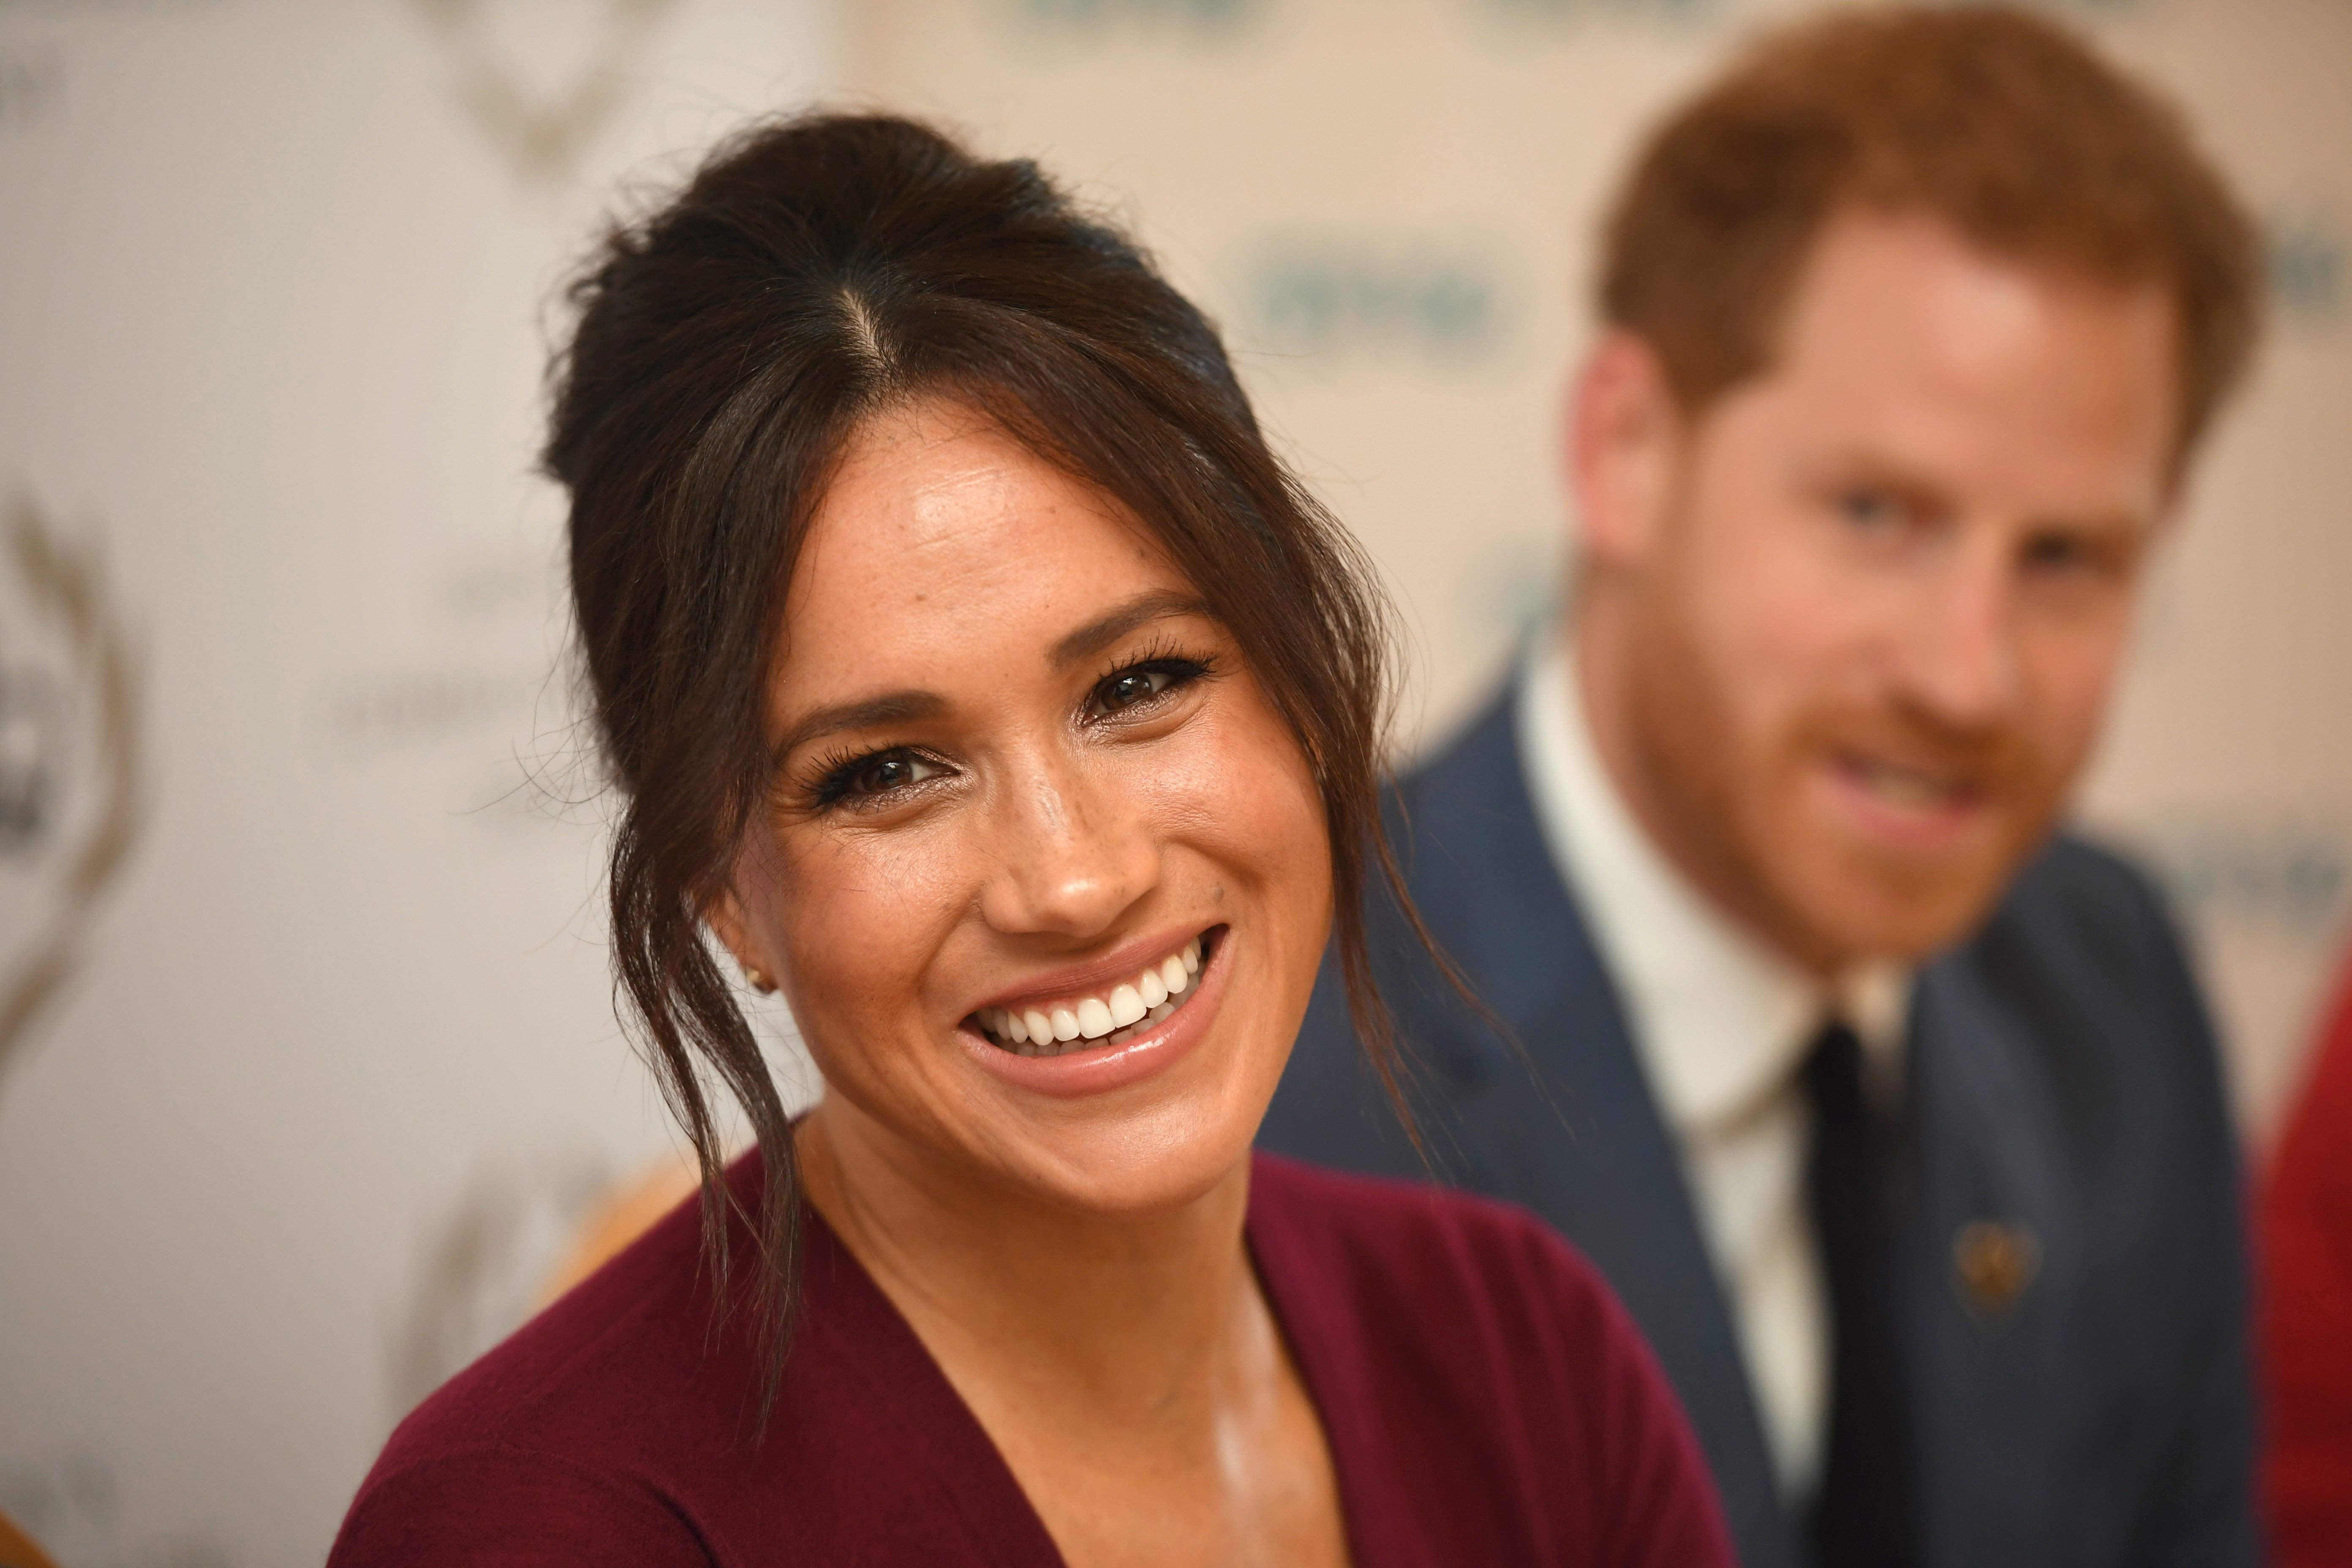 Meghan Markle and Prince Harry attend a discussion on gender equality in Windsor, England on October 25, 2019 | Photo: Getty Images